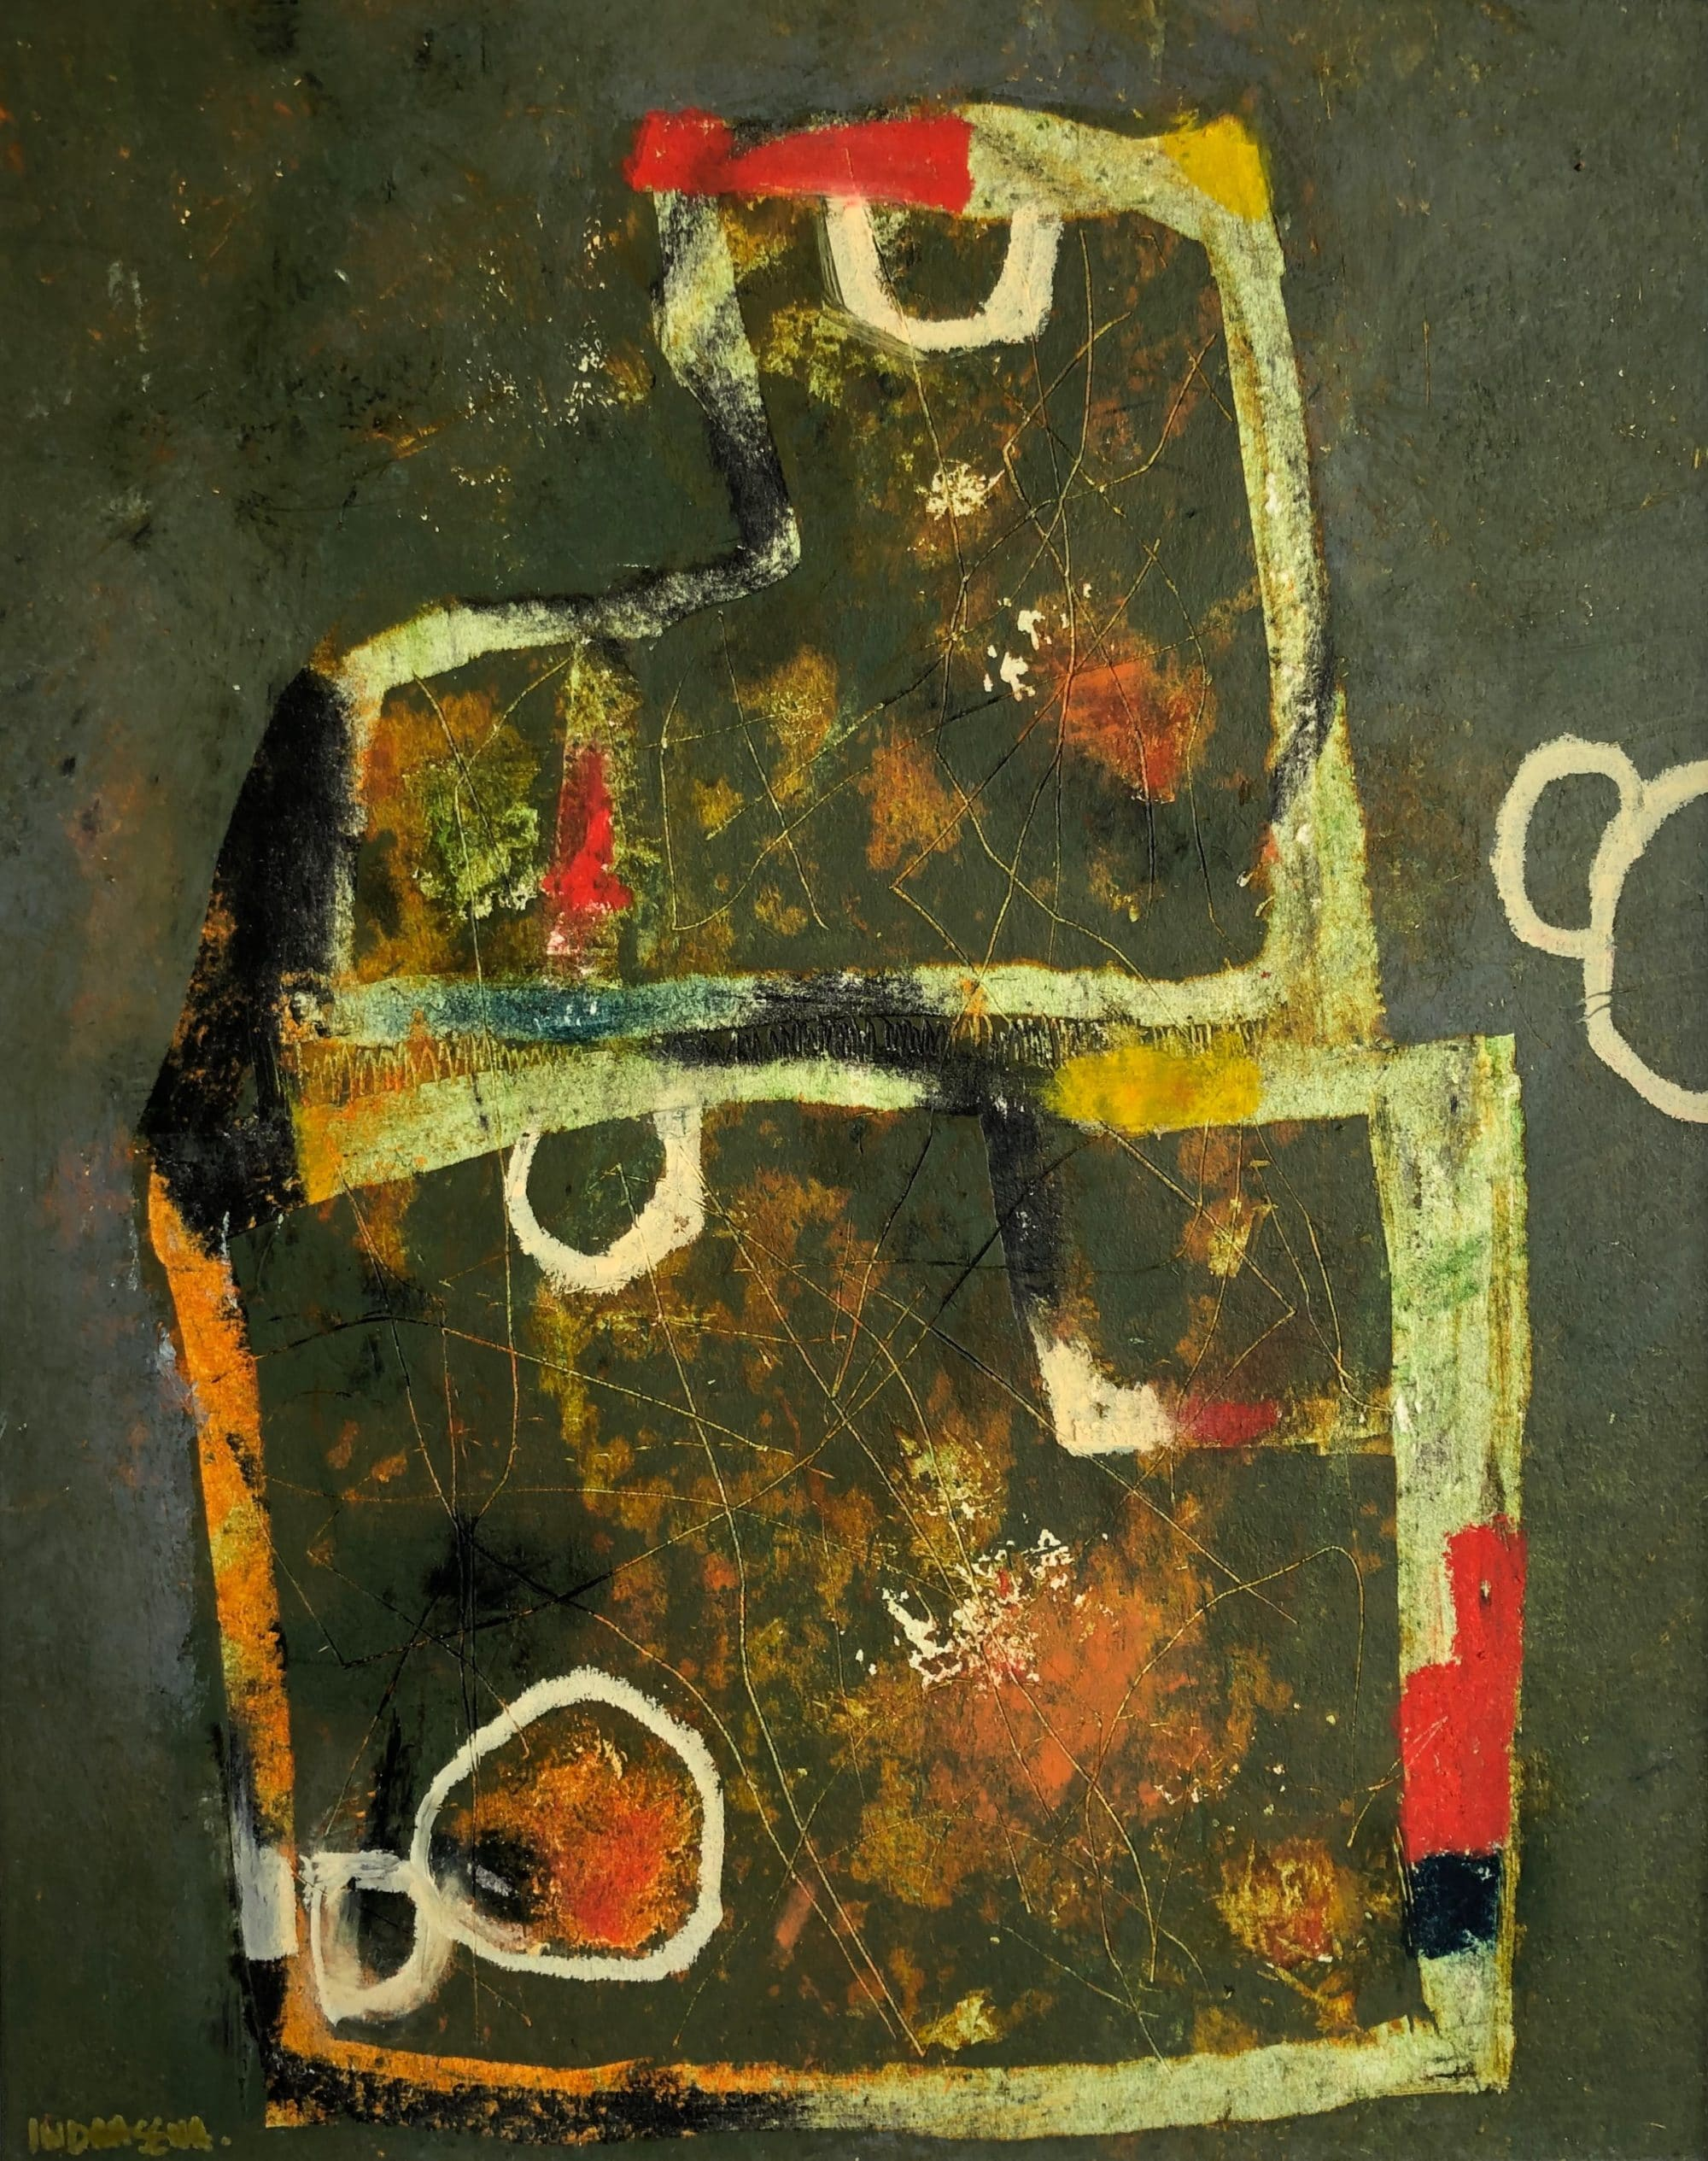 Nabucco 40 x 50 cm Oil and cold wax mixed media